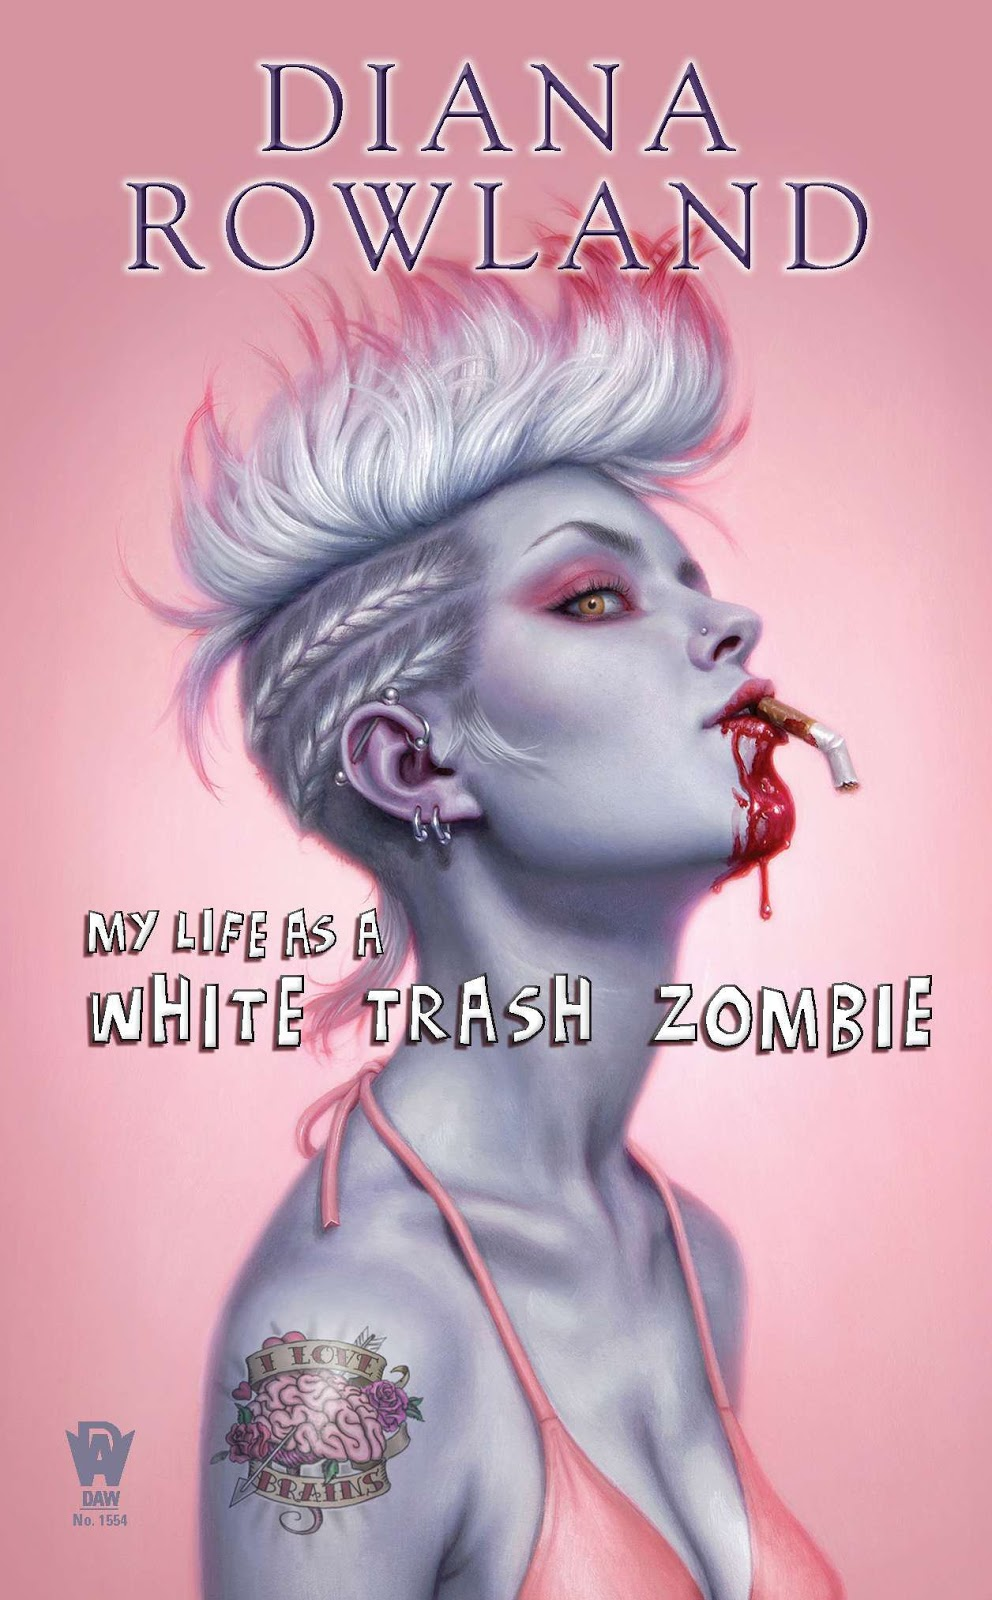 http://nothingbutn9erz.blogspot.co.at/2016/02/my-life-as-white-trash-zombie-diana-rowland-rezension.html